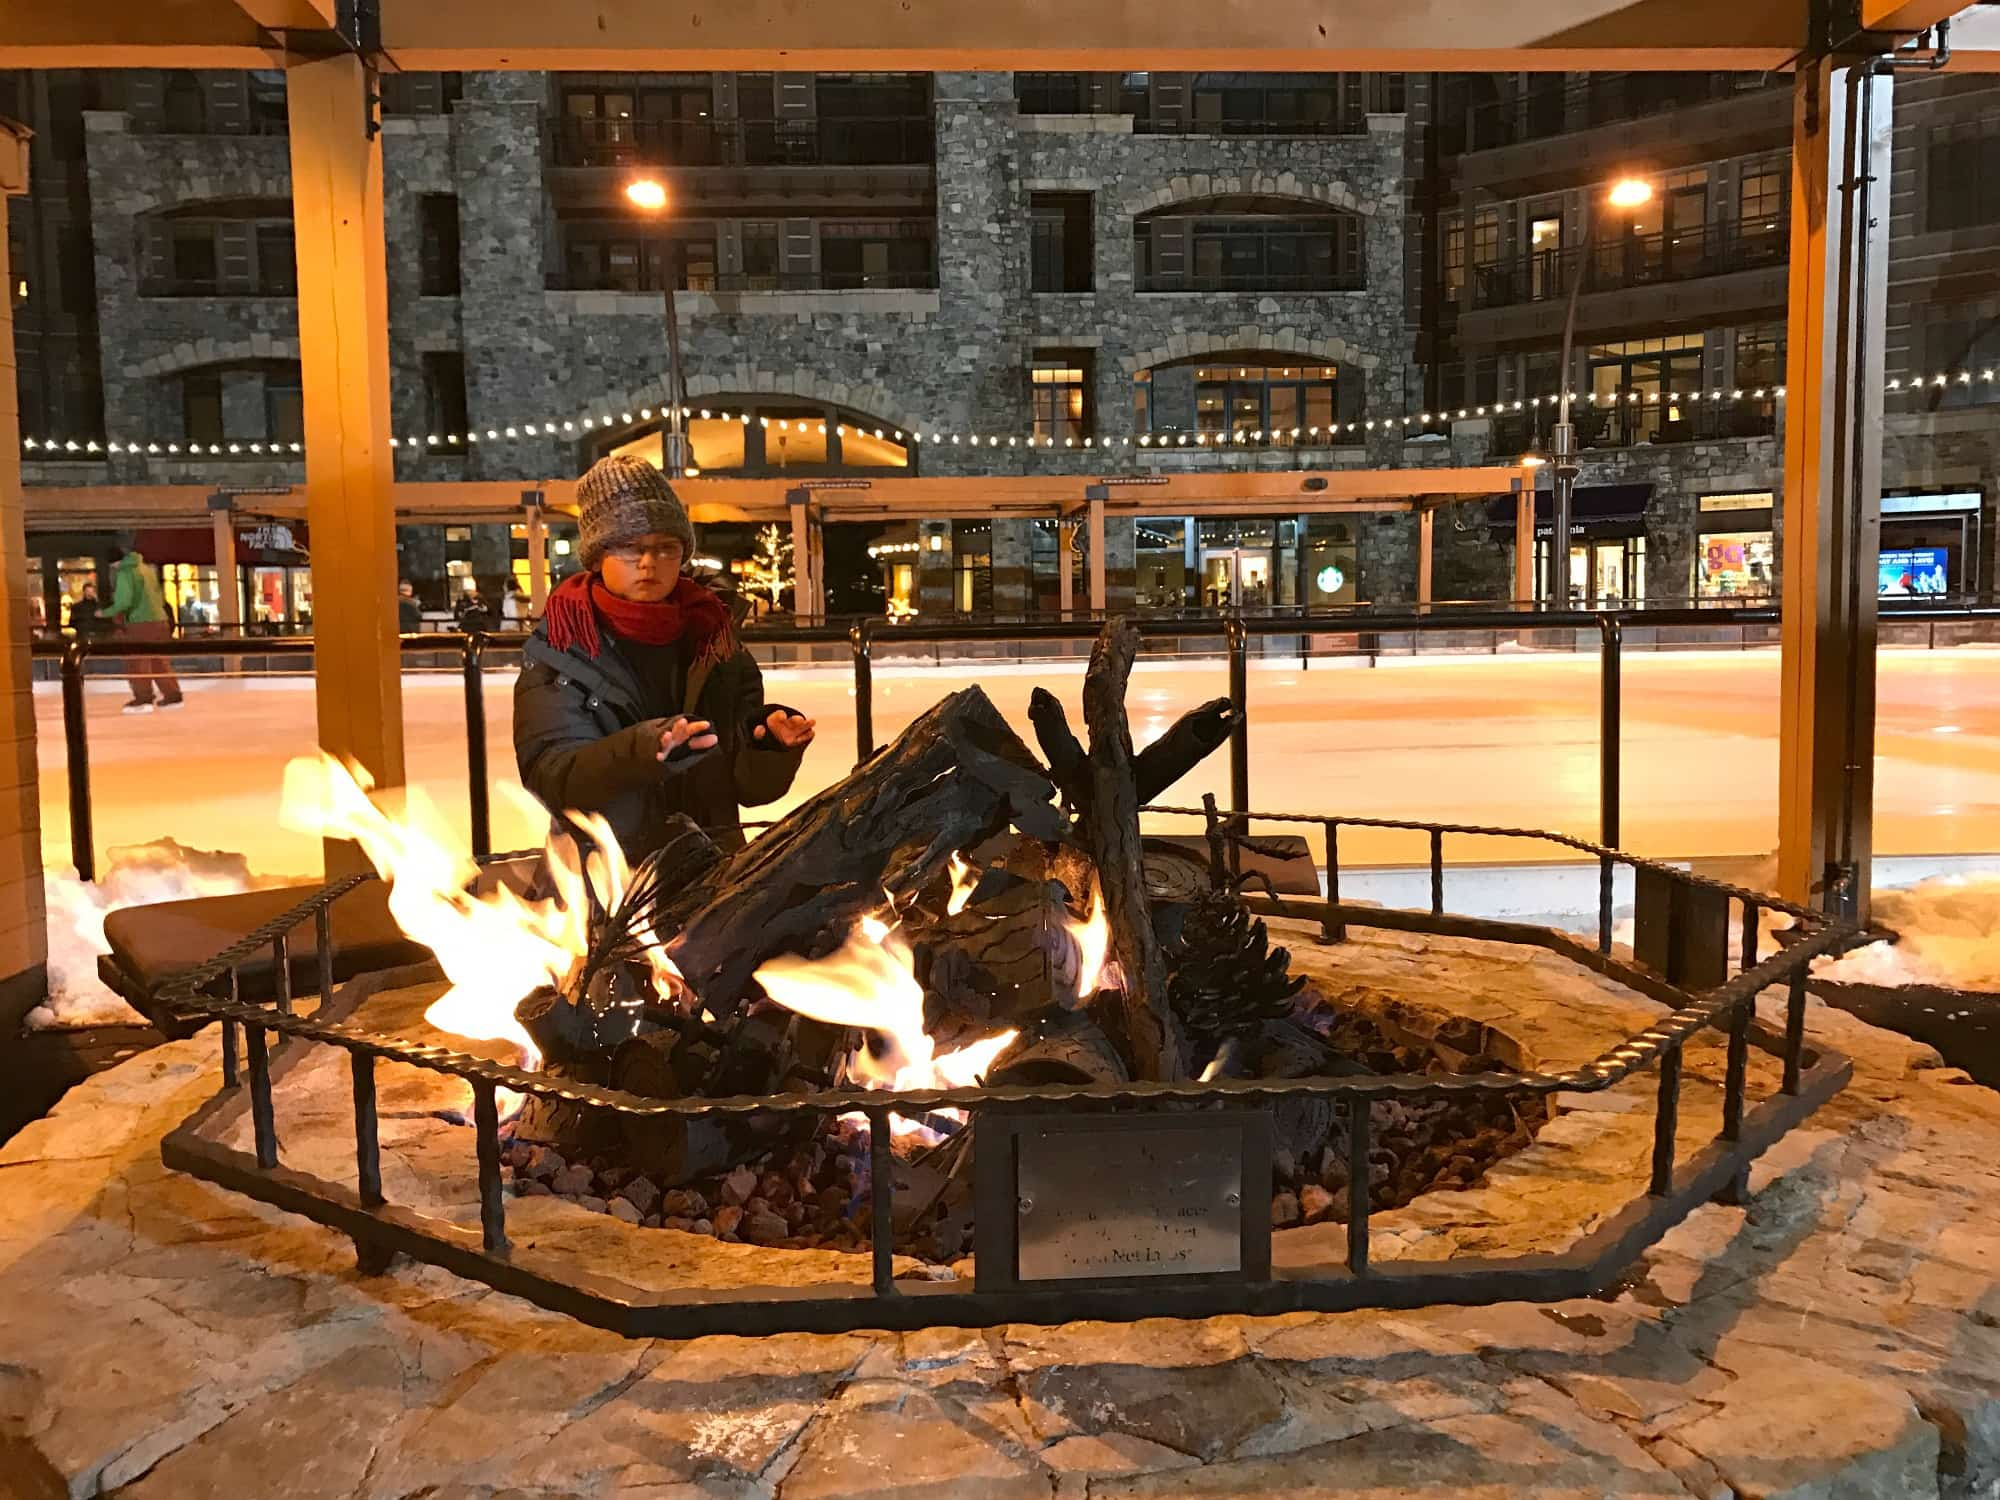 My son warming up by the fire at the ice rink in the Village at Northstar